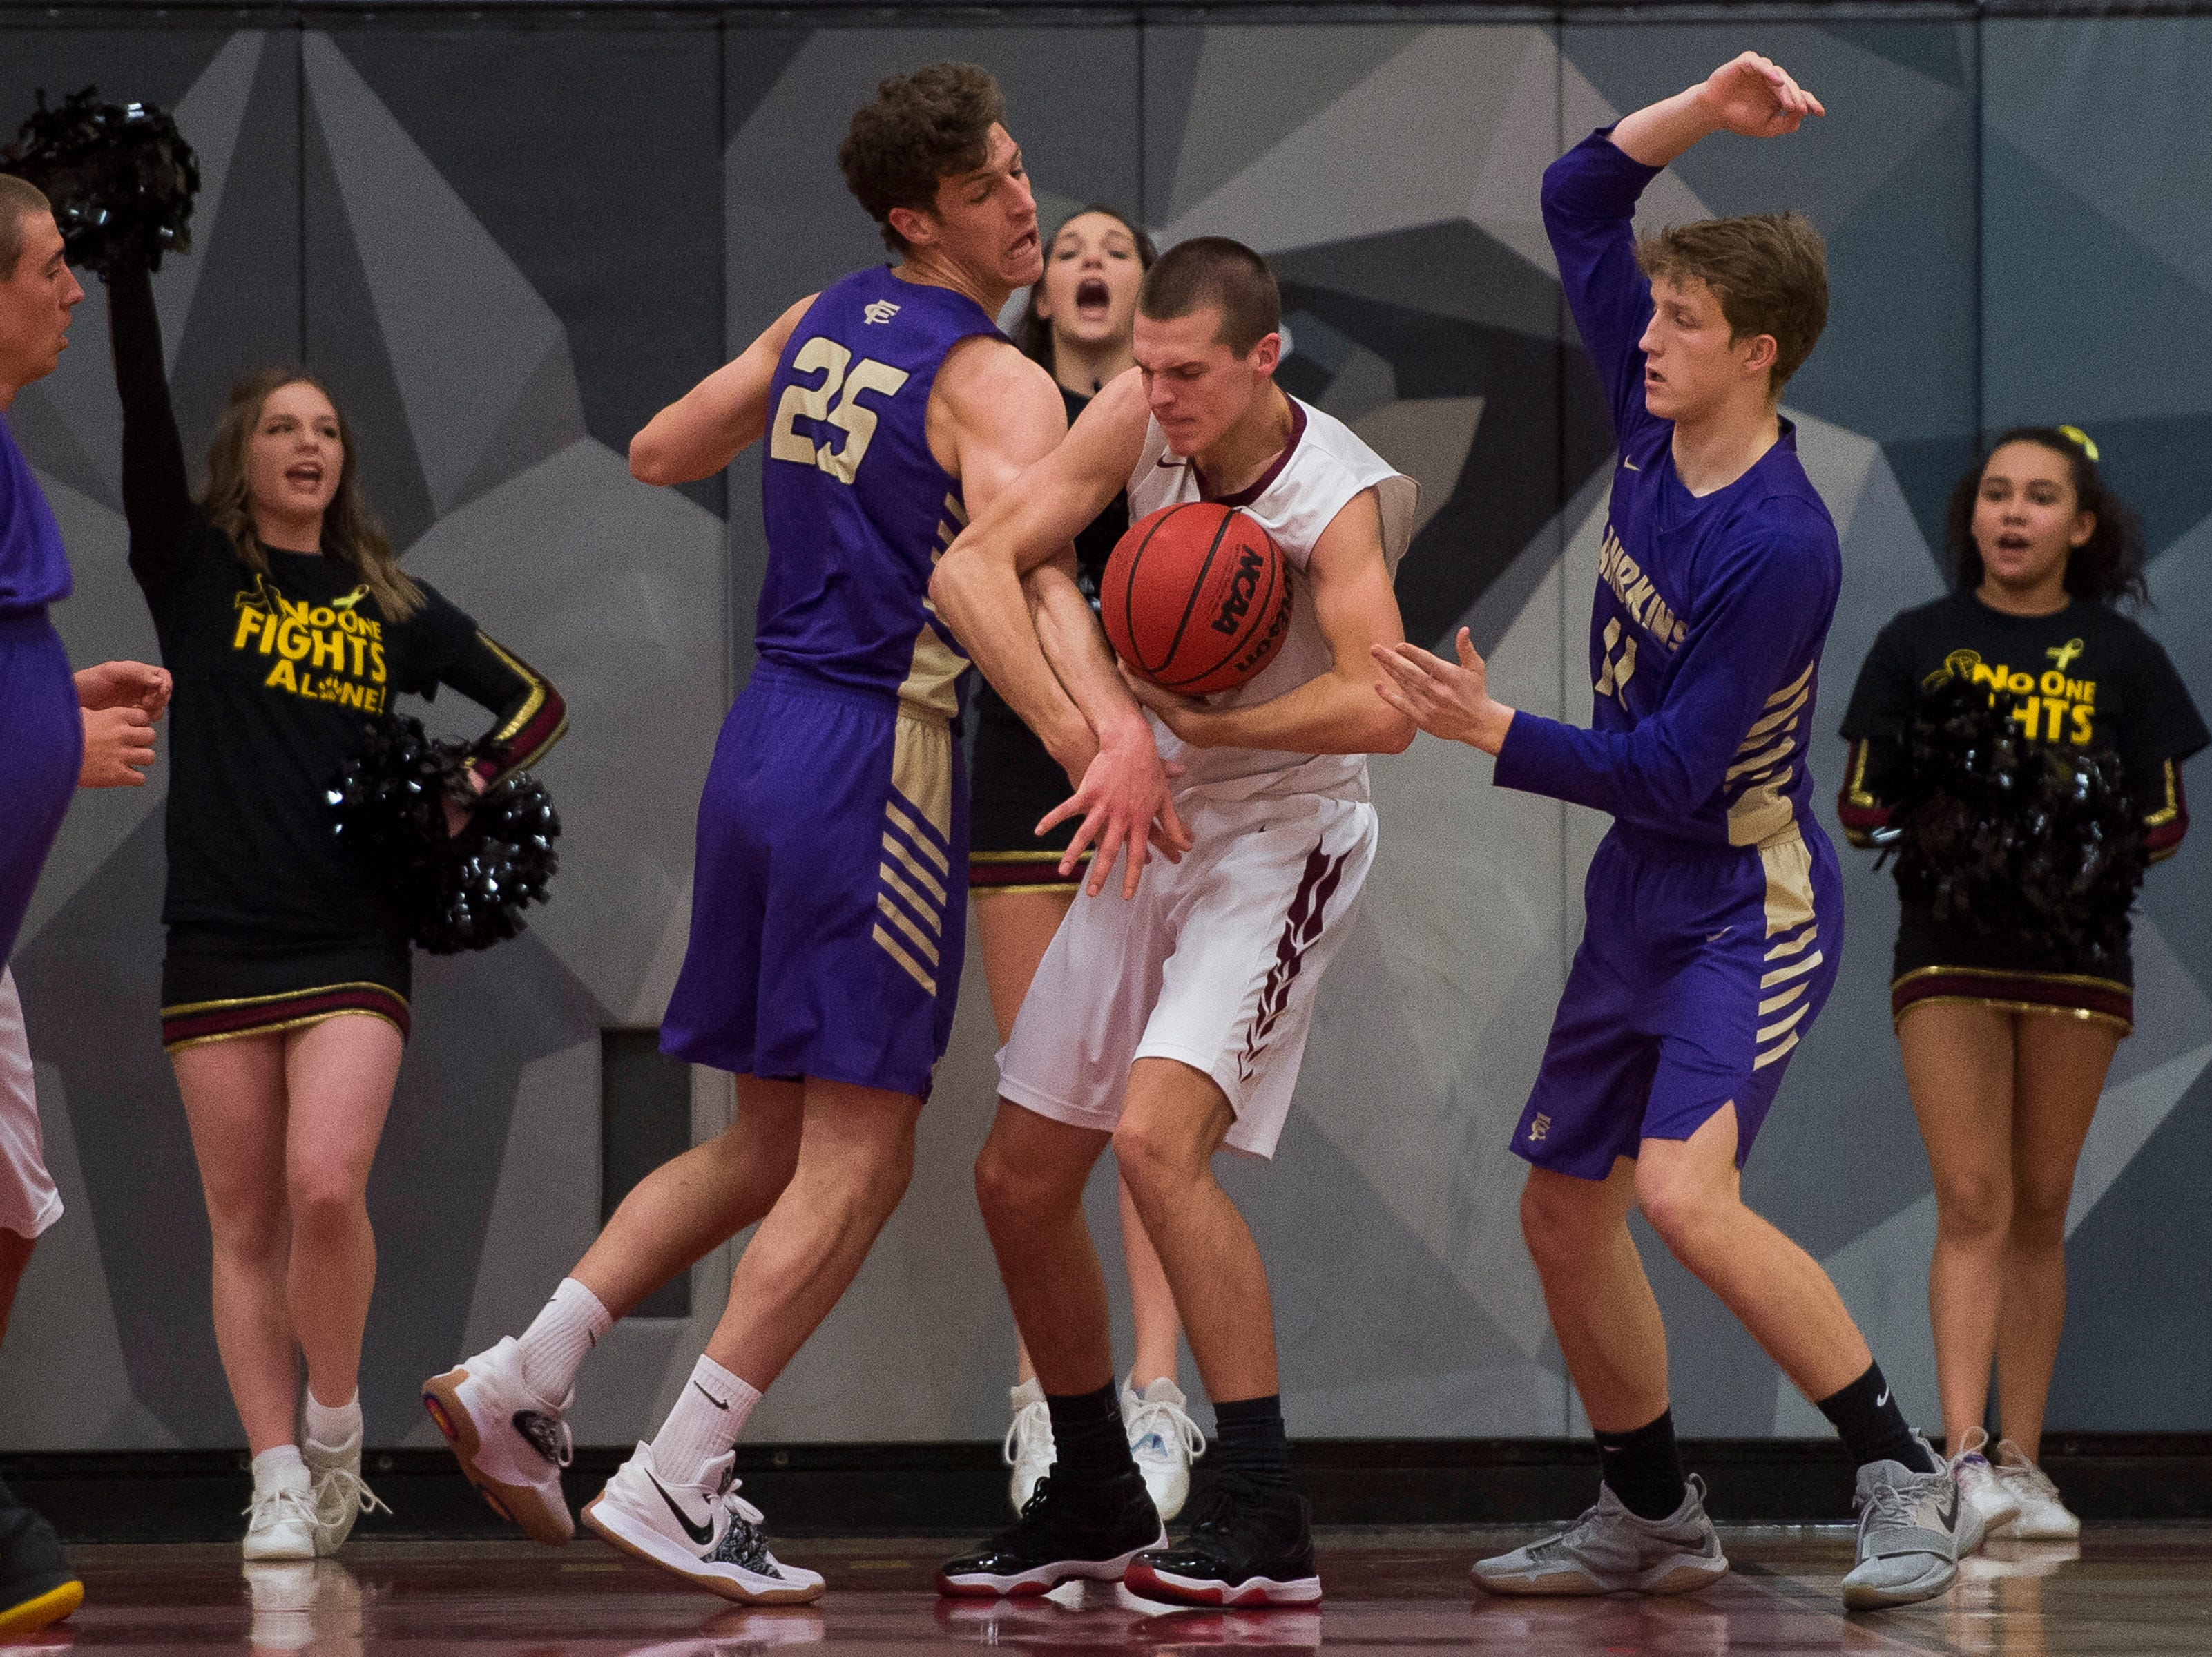 Rocky Mountain High School junior Kenan Schuler (32) and Fort Collins High School senior Benny Khouri (25) struggle for the ball on Friday, Jan. 18, 2019, at Rocky Mountain High School in Fort Collins, Colo.